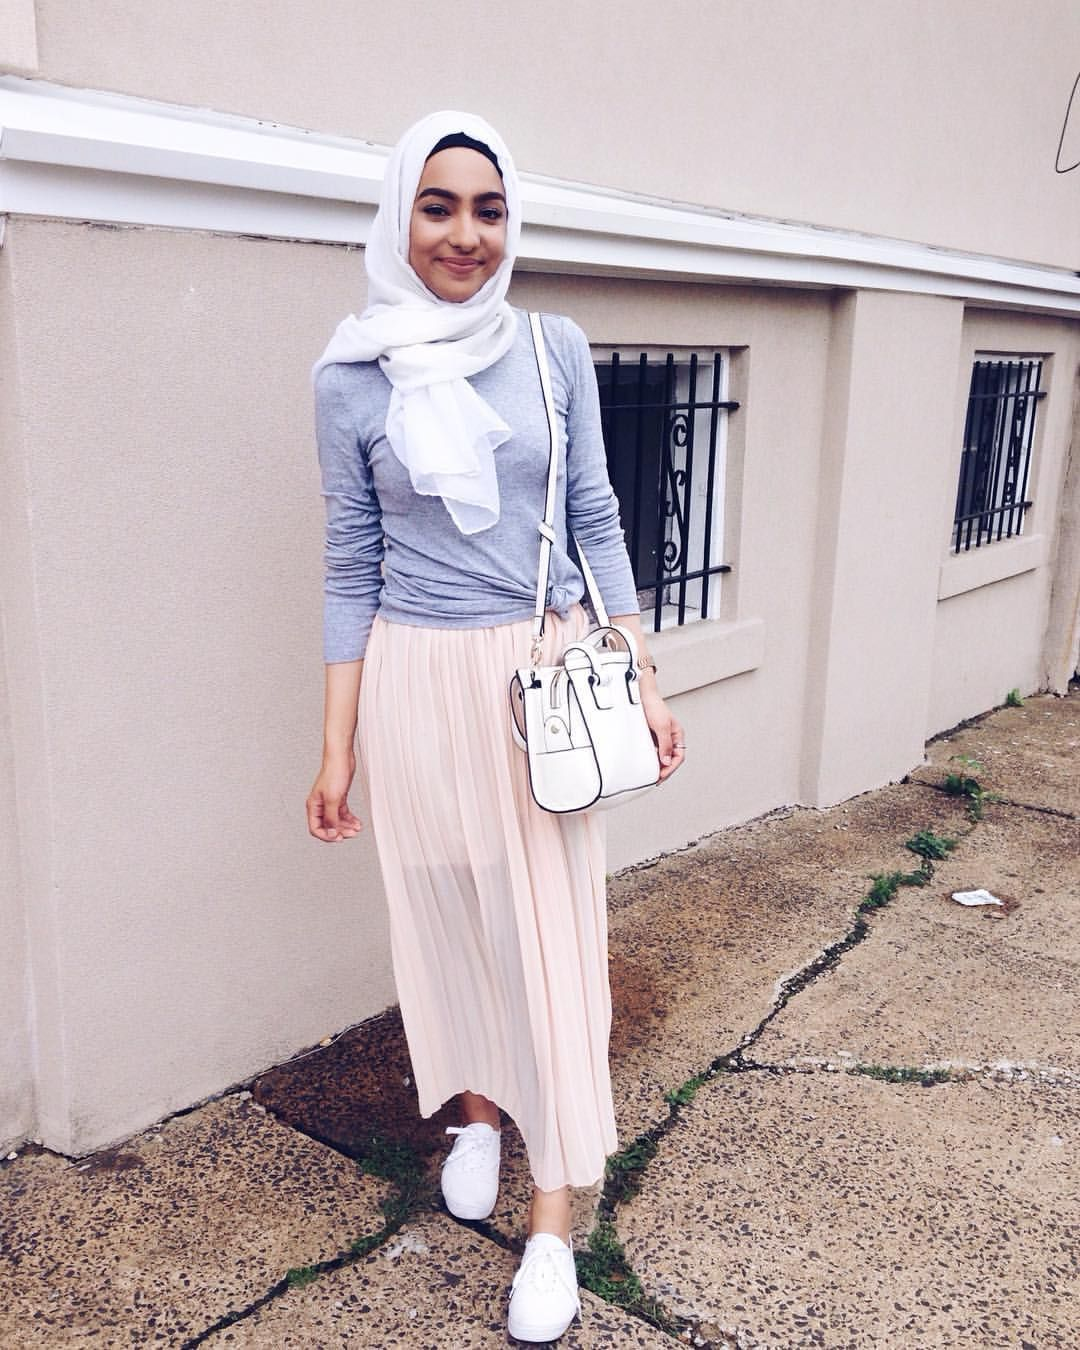 Pin by Ambreen Pathan on Outfit Inspo   Instagram, Instagram